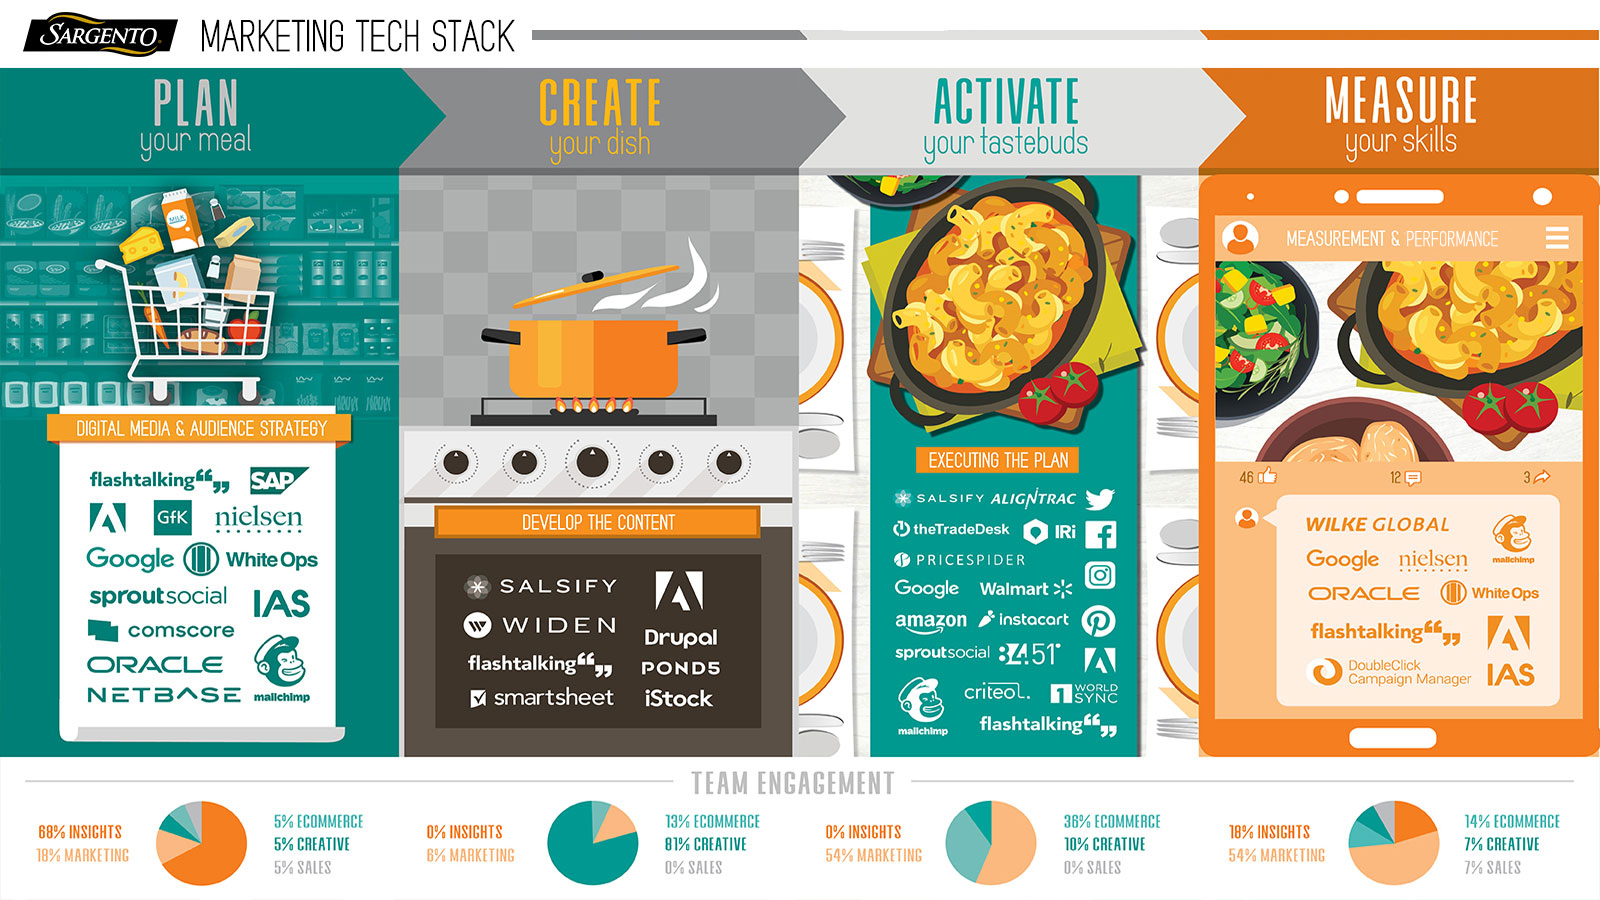 Sargento Martech Stack Infographic